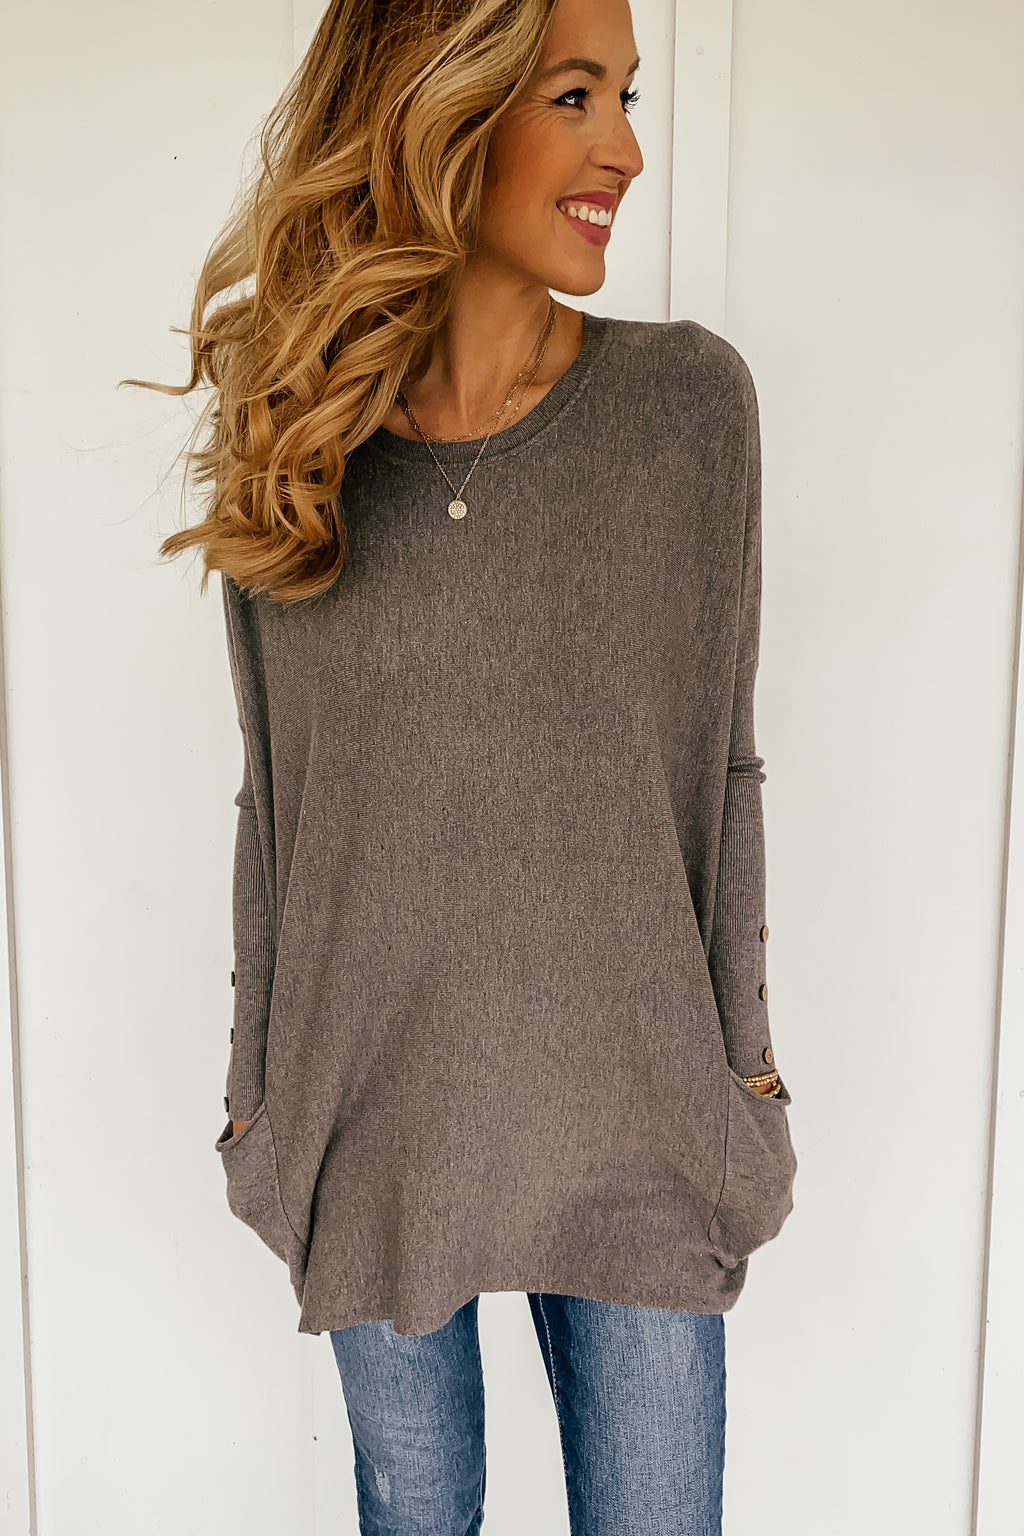 Oversized Pocketed Sweater in Charcoal